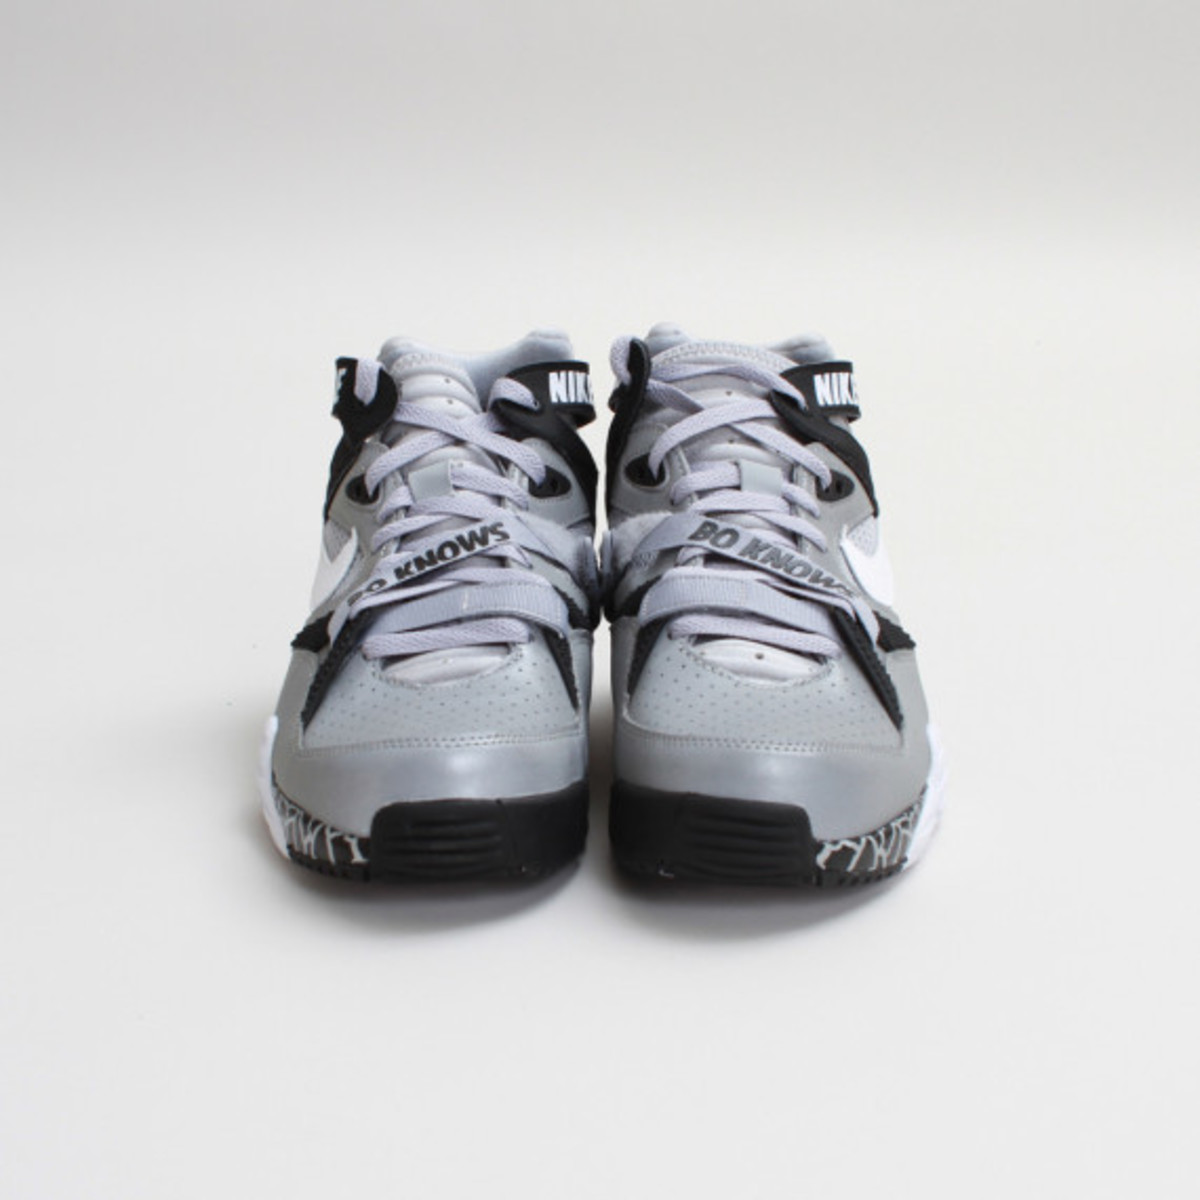 nike-air-trainer-max-91-bo-knows-2